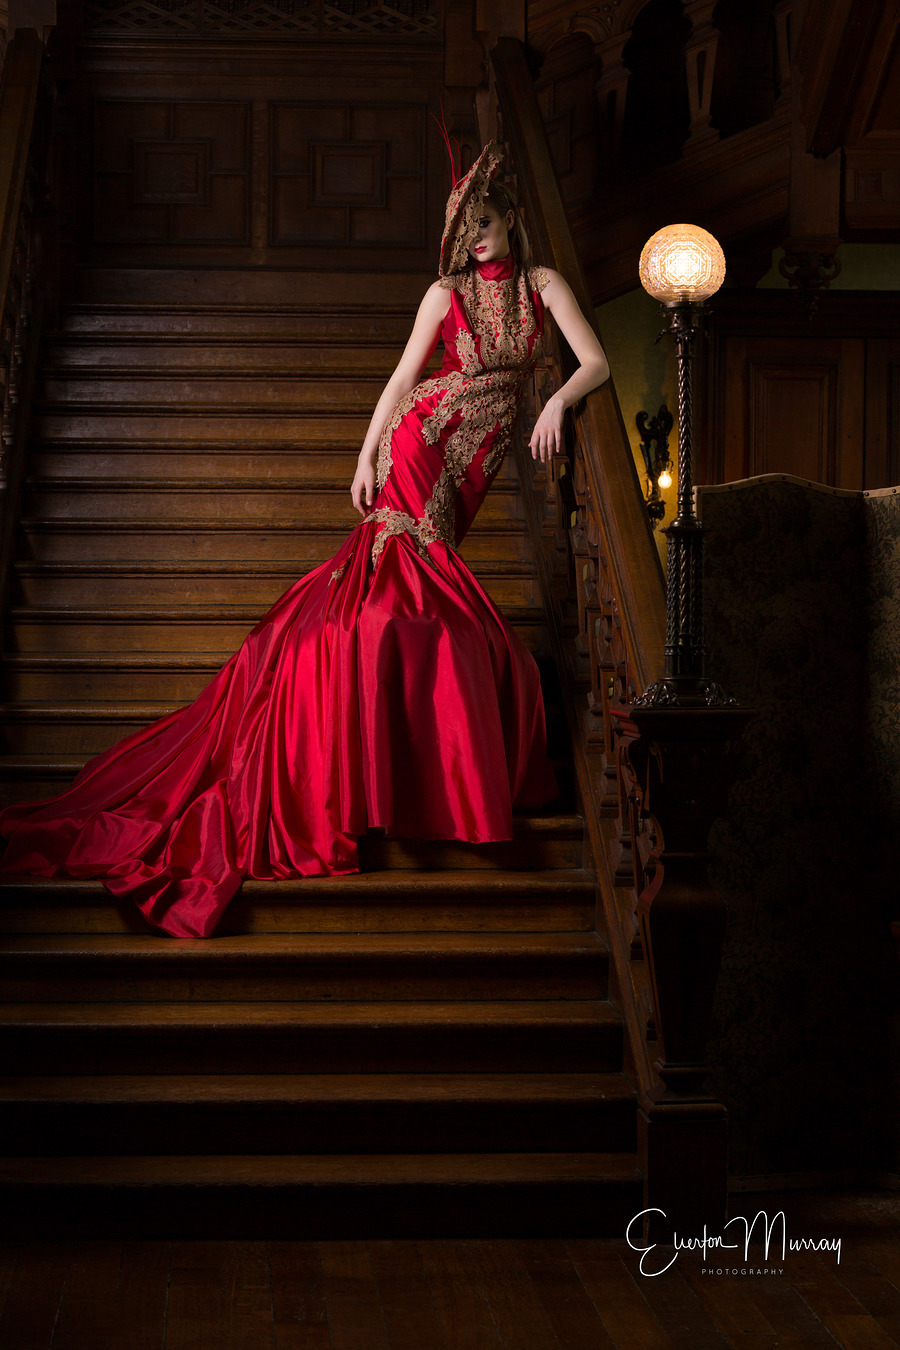 lady of the manor / Photography by Evman52, Model Walter's Wardrobe, Post processing by Evman52, Designer Jen Brook / Uploaded 9th October 2017 @ 11:41 AM